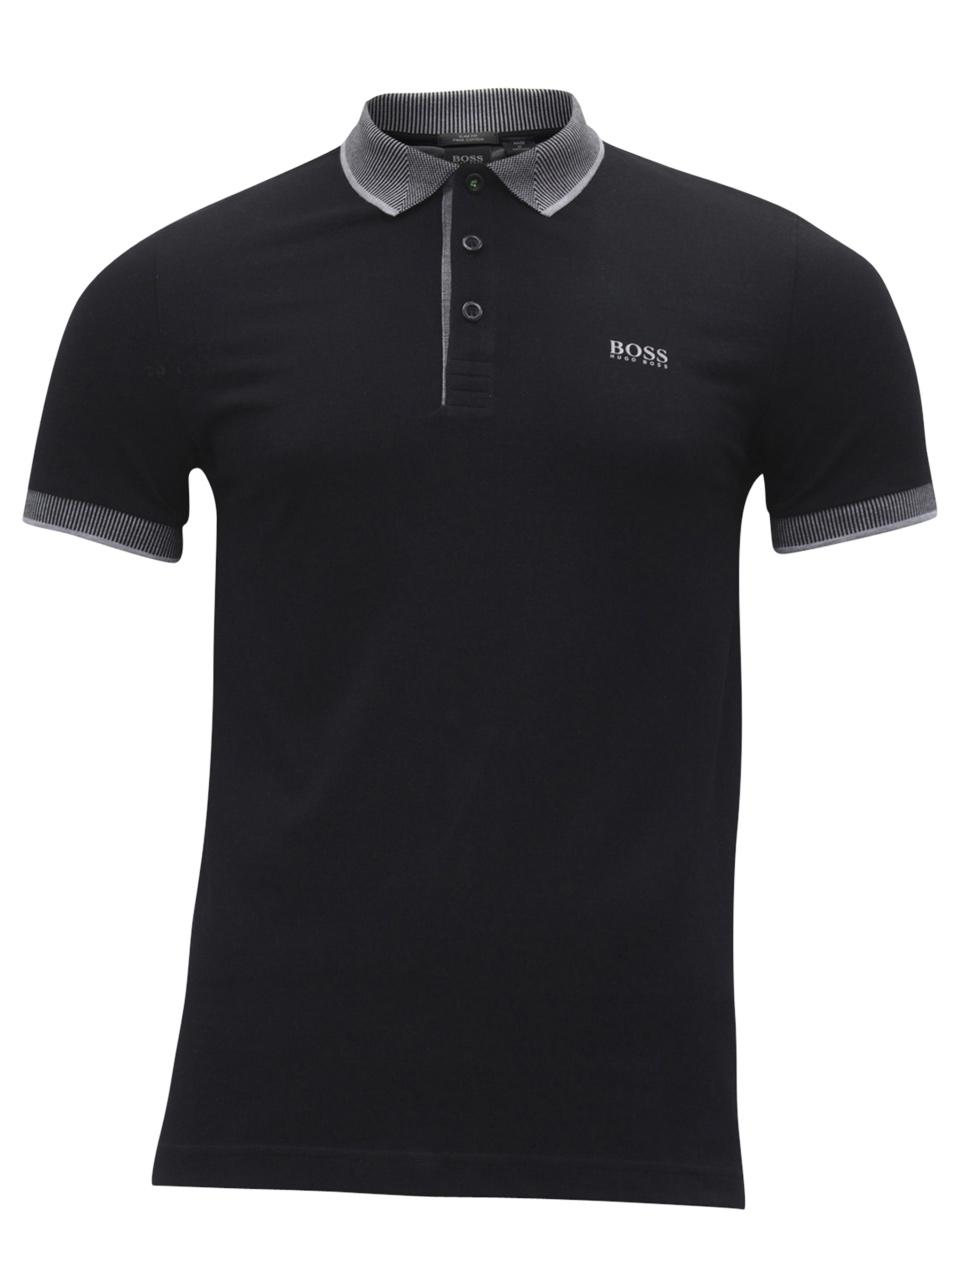 78a54e413 ... Paule-2 Slim Fit Short Sleeve Cotton Polo Shirt by Hugo Boss. Hover to  zoom